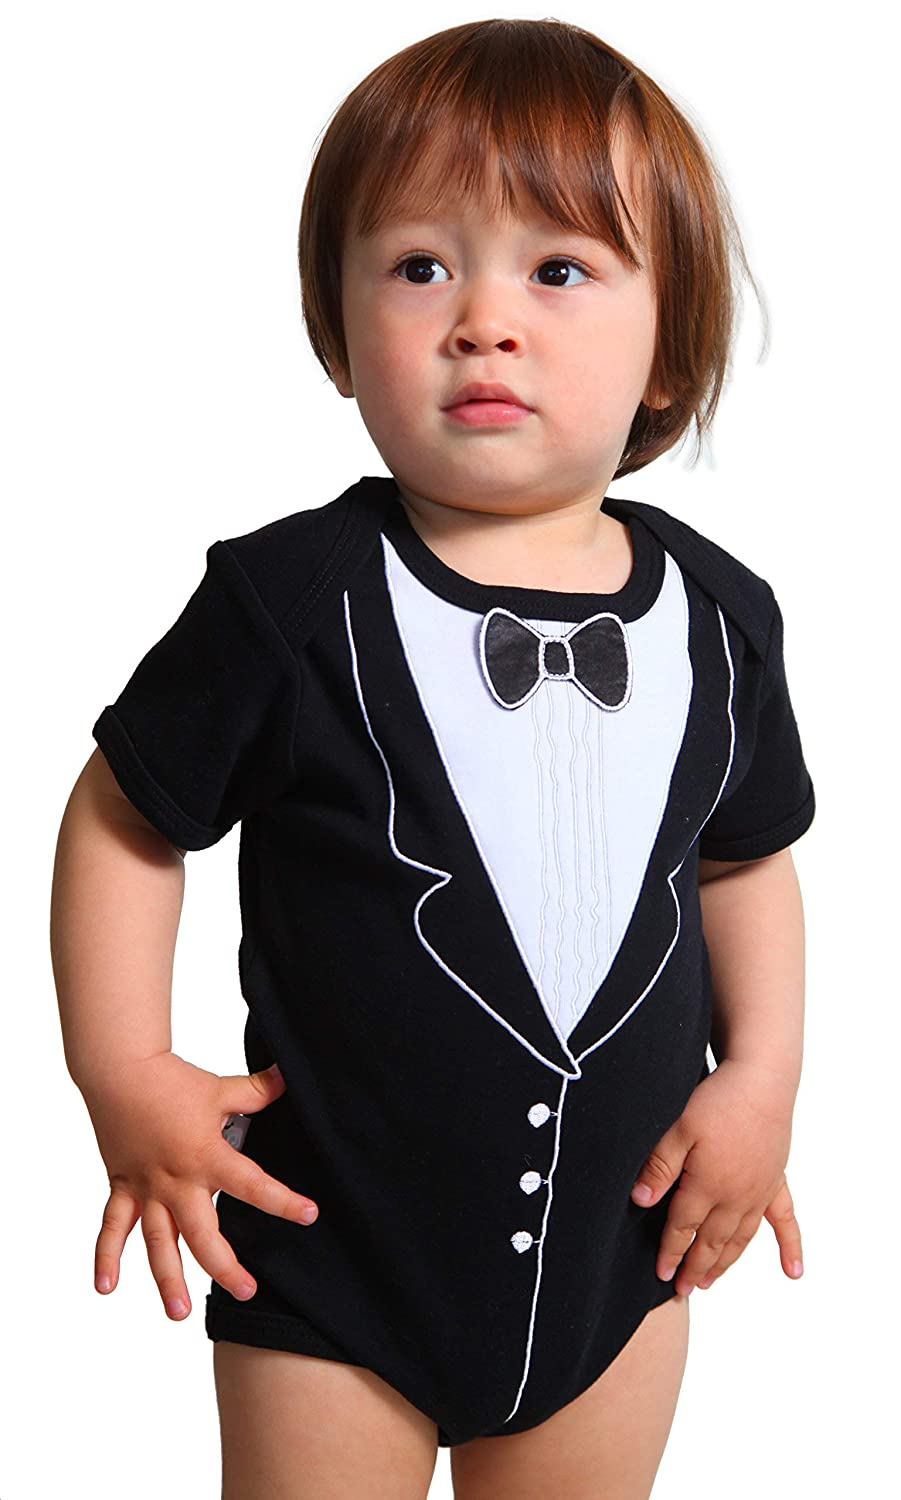 Frenchie Mini Couture Tuxedo Fancy Dress Up Bodysuit With Embroidery and 3D Bowtie, 0-3 months